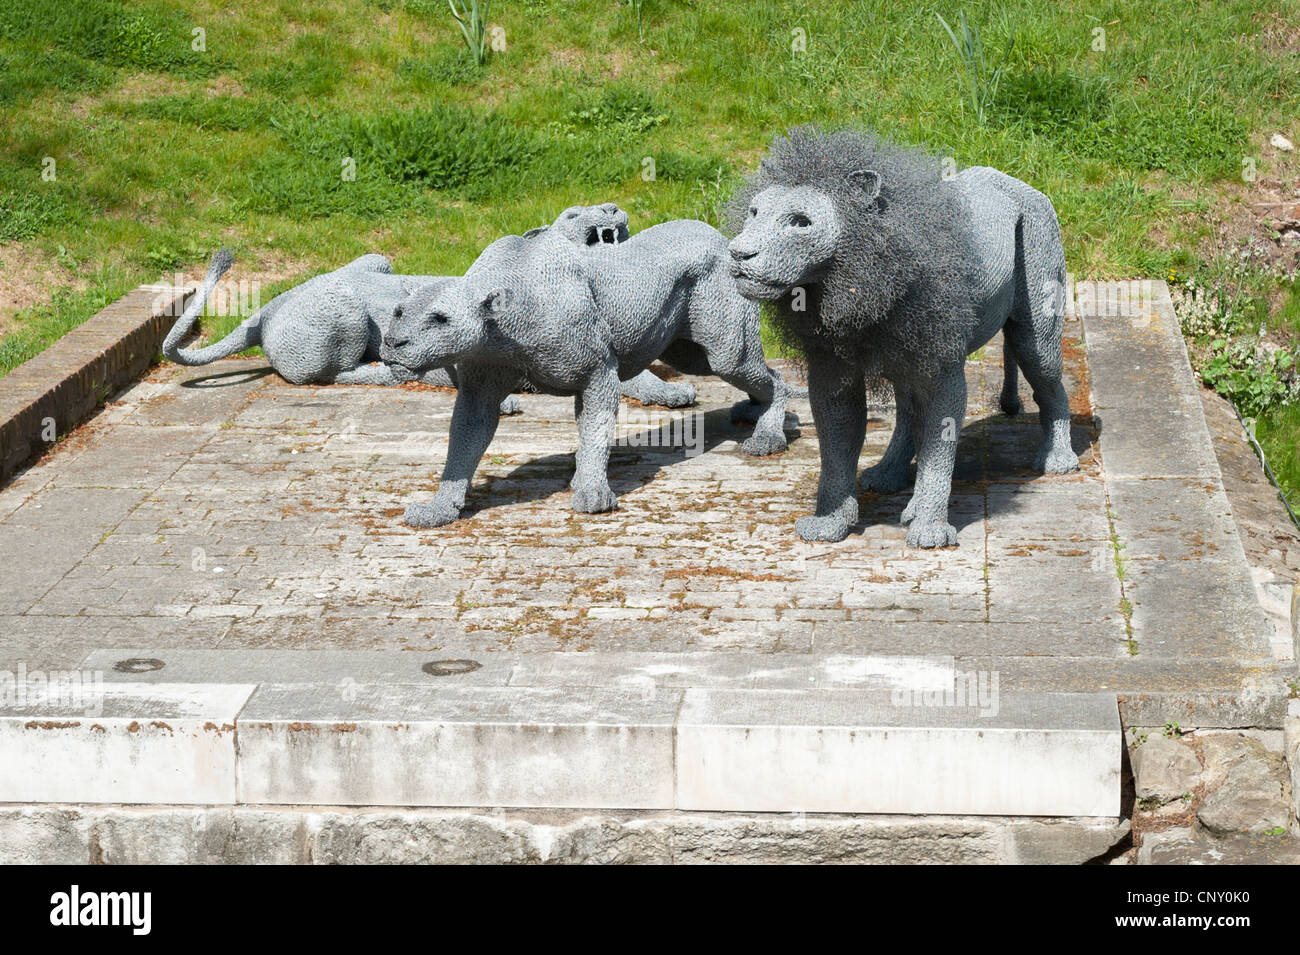 Tower of London galvanized wire mesh lions by Kendra Haste 2010 to commemorate the Royal Menagerie 1255 to 1835 - Stock Image